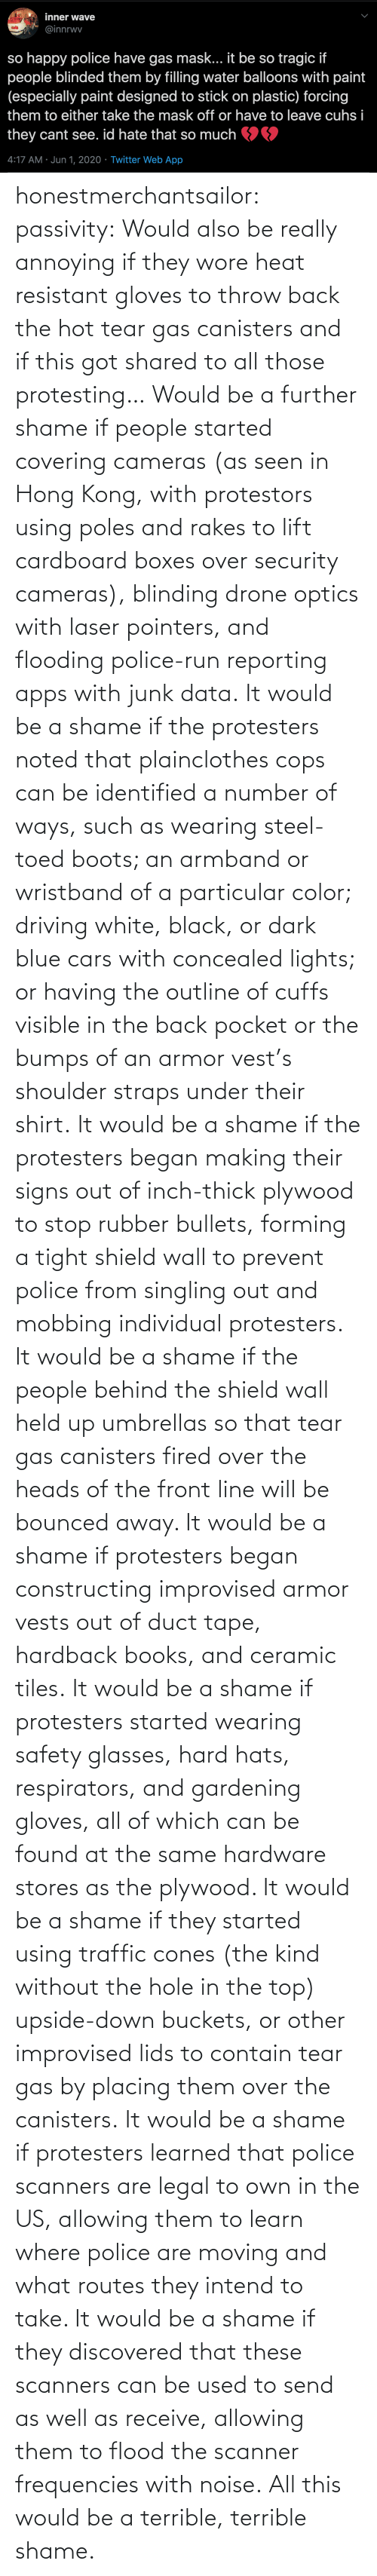 All This: honestmerchantsailor: passivity: Would also be really annoying if they wore heat resistant gloves to throw back the hot tear gas canisters and if this got shared to all those protesting… Would be a further shame if people started covering cameras (as seen in Hong Kong, with protestors using poles and rakes to lift cardboard boxes over security cameras), blinding drone optics with laser pointers, and flooding police-run reporting apps with junk data. It would be a shame if the protesters noted that plainclothes cops can be identified a number of ways, such as wearing steel-toed boots; an armband or wristband of a particular color; driving white, black, or dark blue cars with concealed lights; or having the outline of cuffs visible in the back pocket or the bumps of an armor vest's shoulder straps under their shirt. It would be a shame if the protesters began making their signs out of inch-thick plywood to stop rubber bullets, forming a tight shield wall to prevent police from singling out and mobbing individual protesters. It would be a shame if the people behind the shield wall held up umbrellas so that tear gas canisters fired over the heads of the front line will be bounced away. It would be a shame if protesters began constructing improvised armor vests out of duct tape, hardback books, and ceramic tiles. It would be a shame if protesters started wearing safety glasses, hard hats, respirators, and gardening gloves, all of which can be found at the same hardware stores as the plywood. It would be a shame if they started using traffic cones (the kind without the hole in the top) upside-down buckets, or other improvised lids to contain tear gas by placing them over the canisters. It would be a shame if protesters learned that police scanners are legal to own in the US, allowing them to learn where police are moving and what routes they intend to take. It would be a shame if they discovered that these scanners can be used to send as well as receive, allowing them to flood the scanner frequencies with noise. All this would be a terrible, terrible shame.